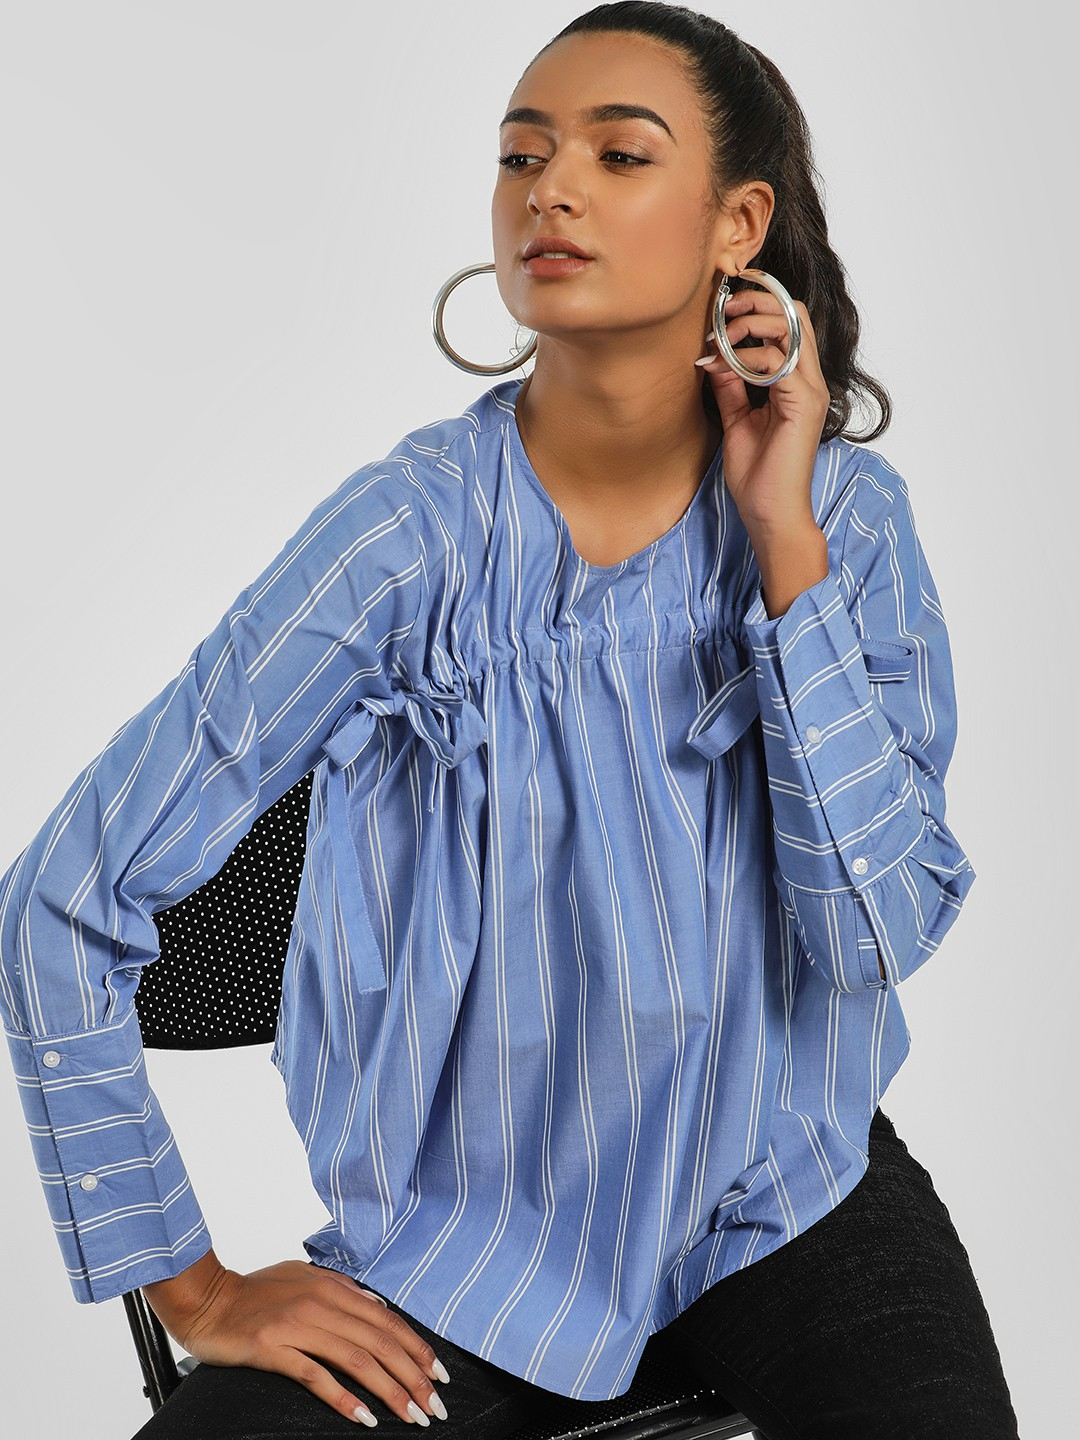 Sbuys Blue Striped Tie-Up Blouse 1